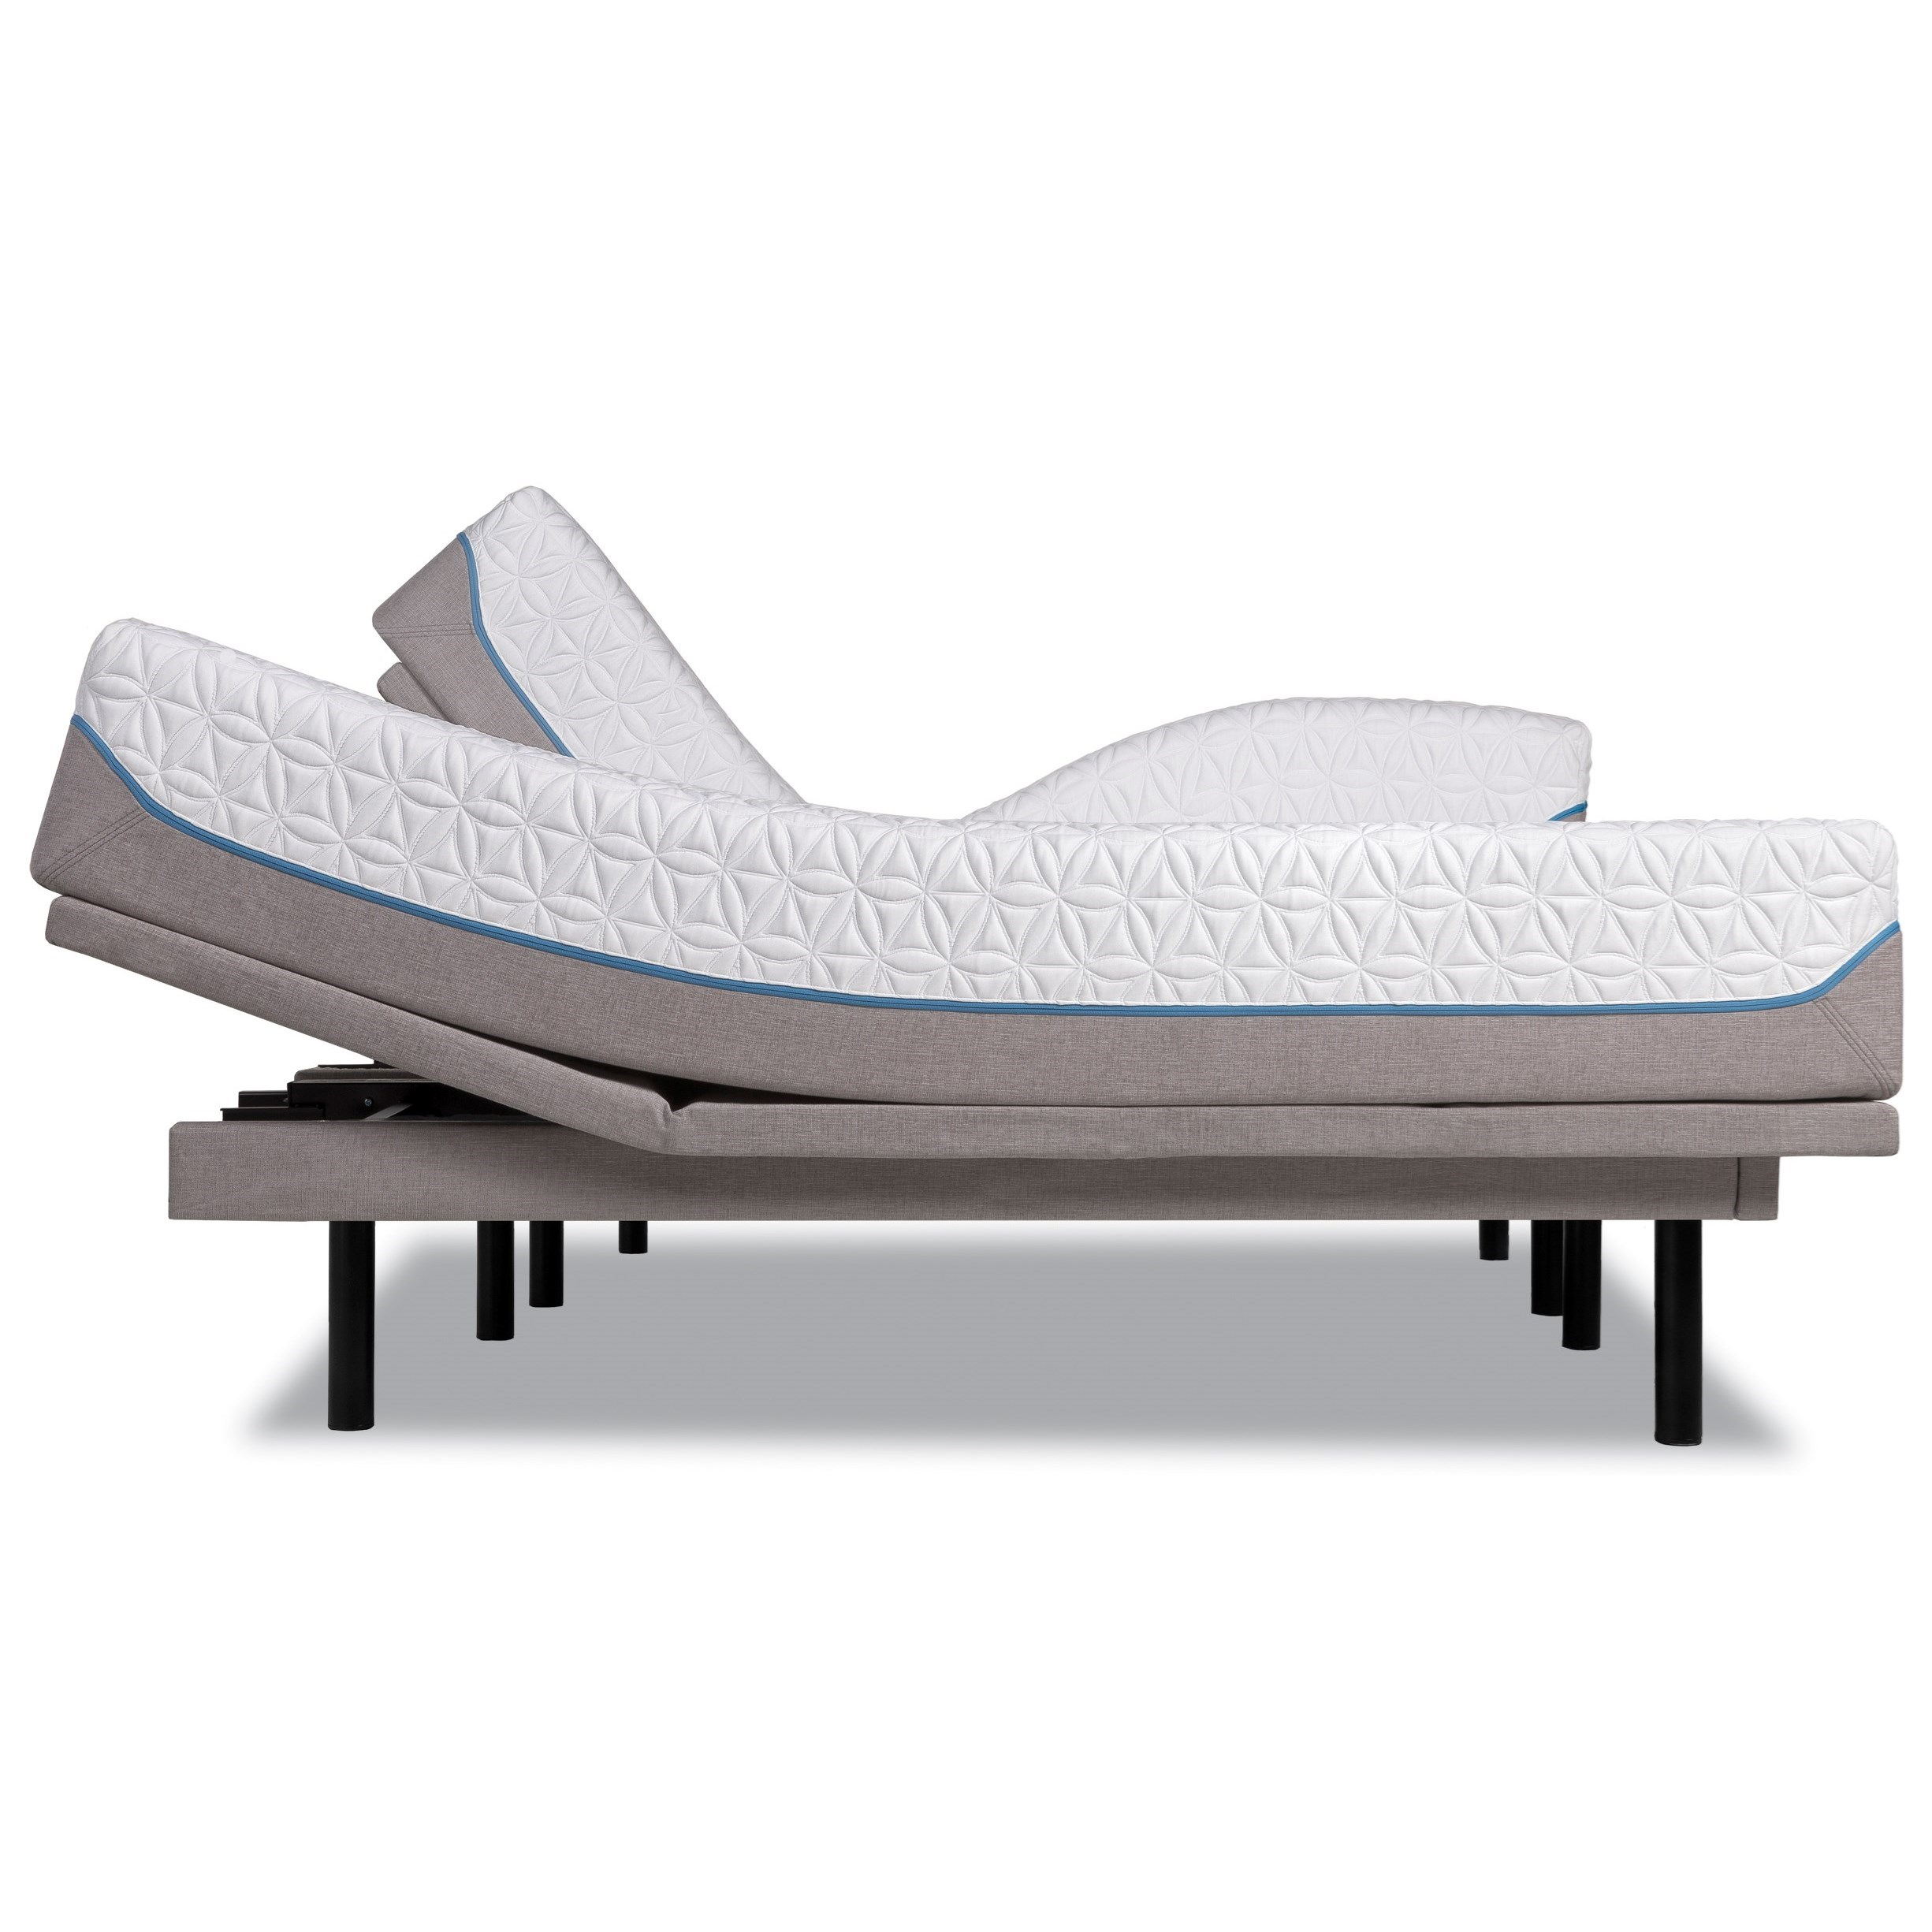 Tempur-Pedic® TEMPUR-Cloud Supreme Cal King Soft Mattress Set - Item Number: 10240280+2x25289290